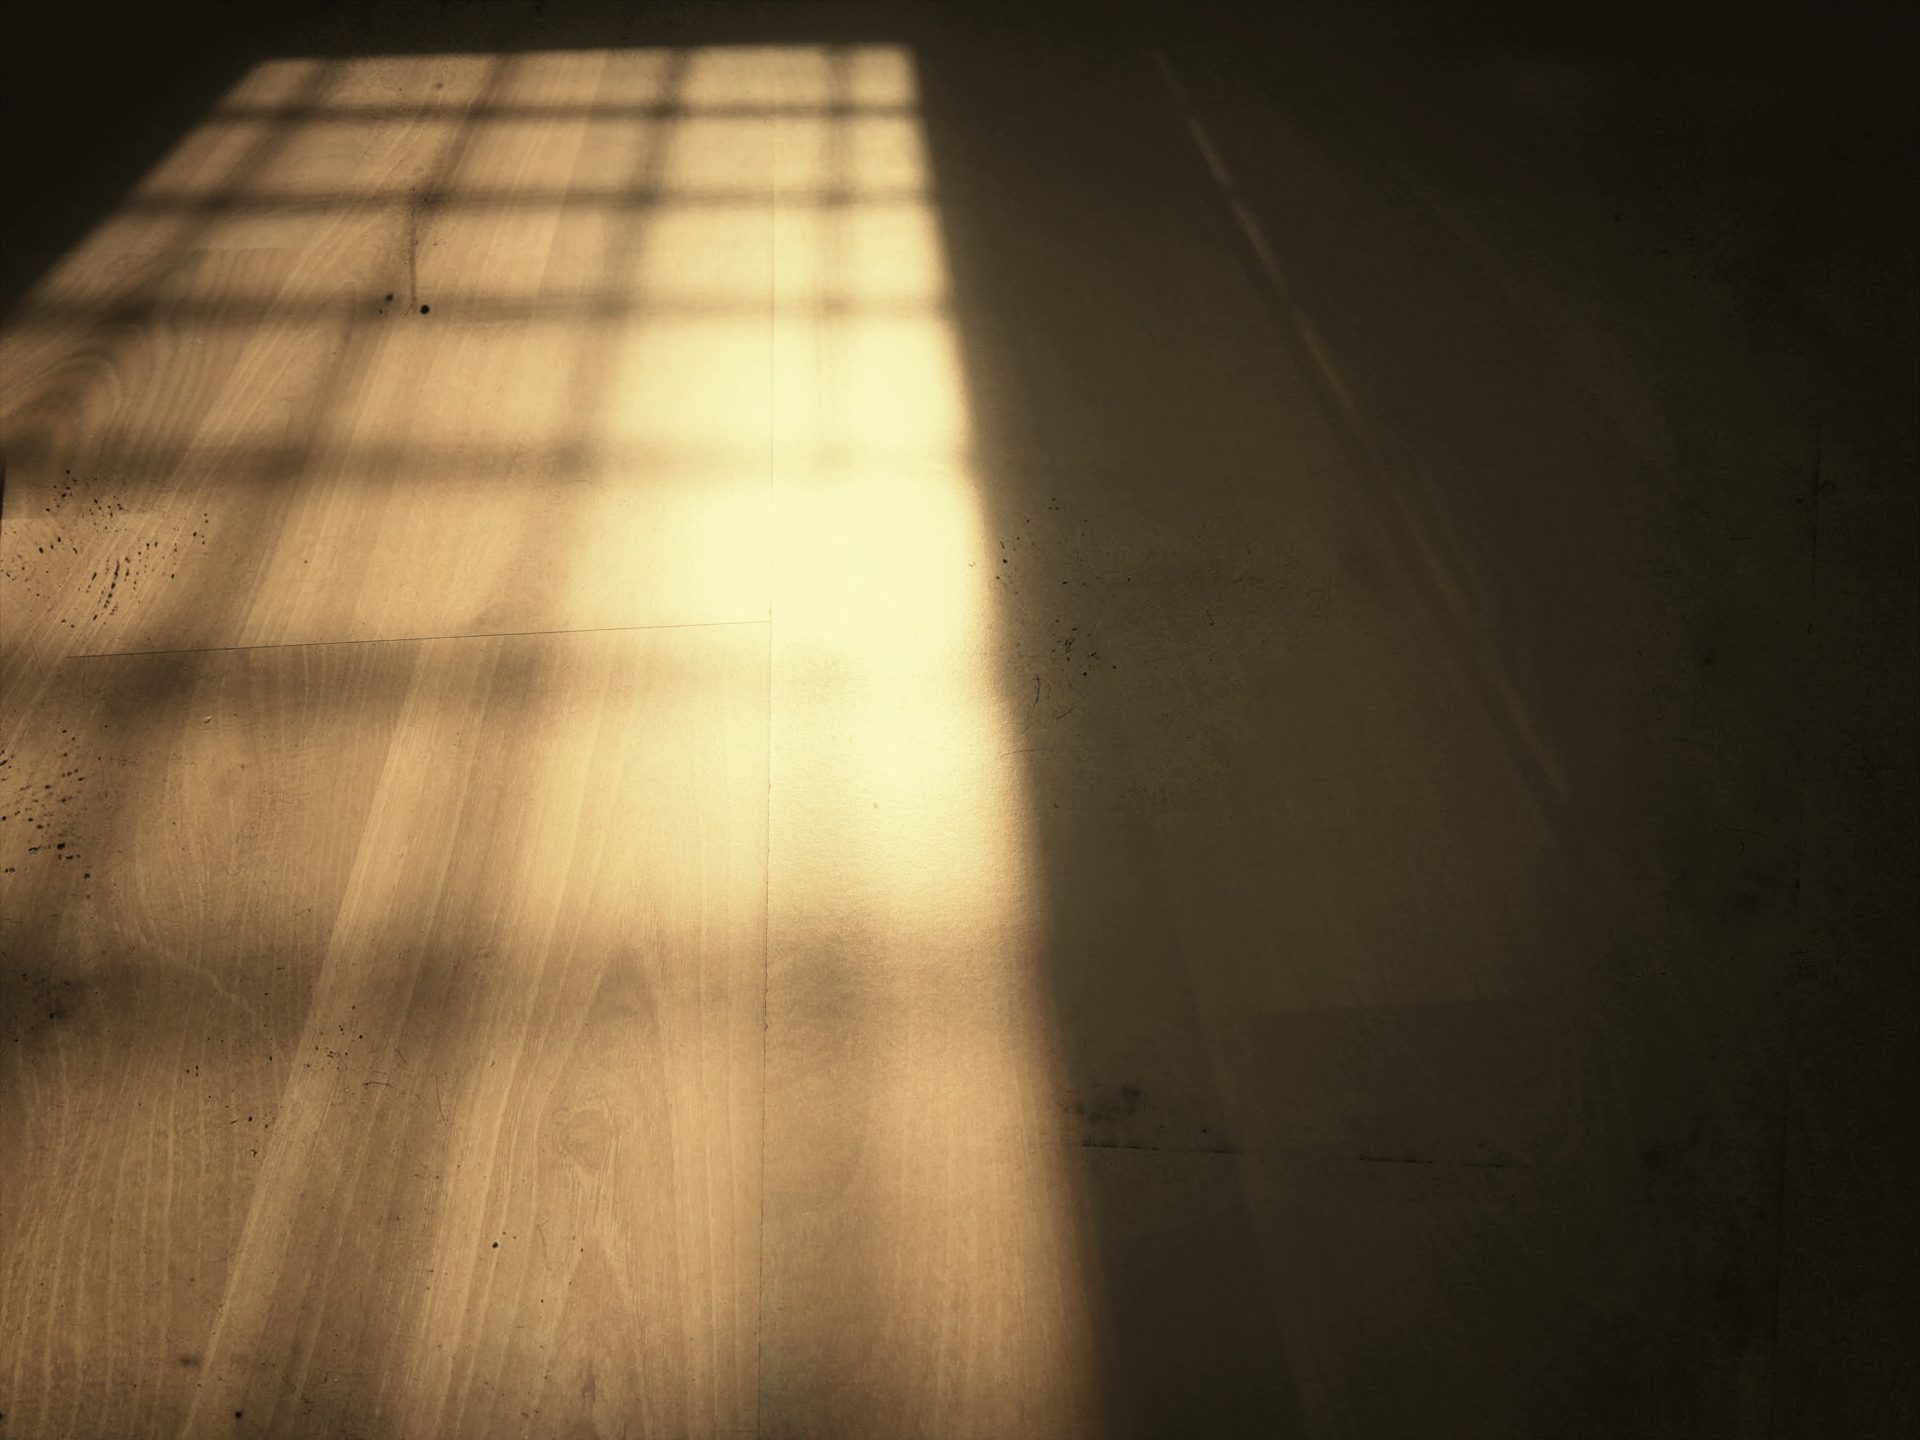 floor-shadow-softwood-576469